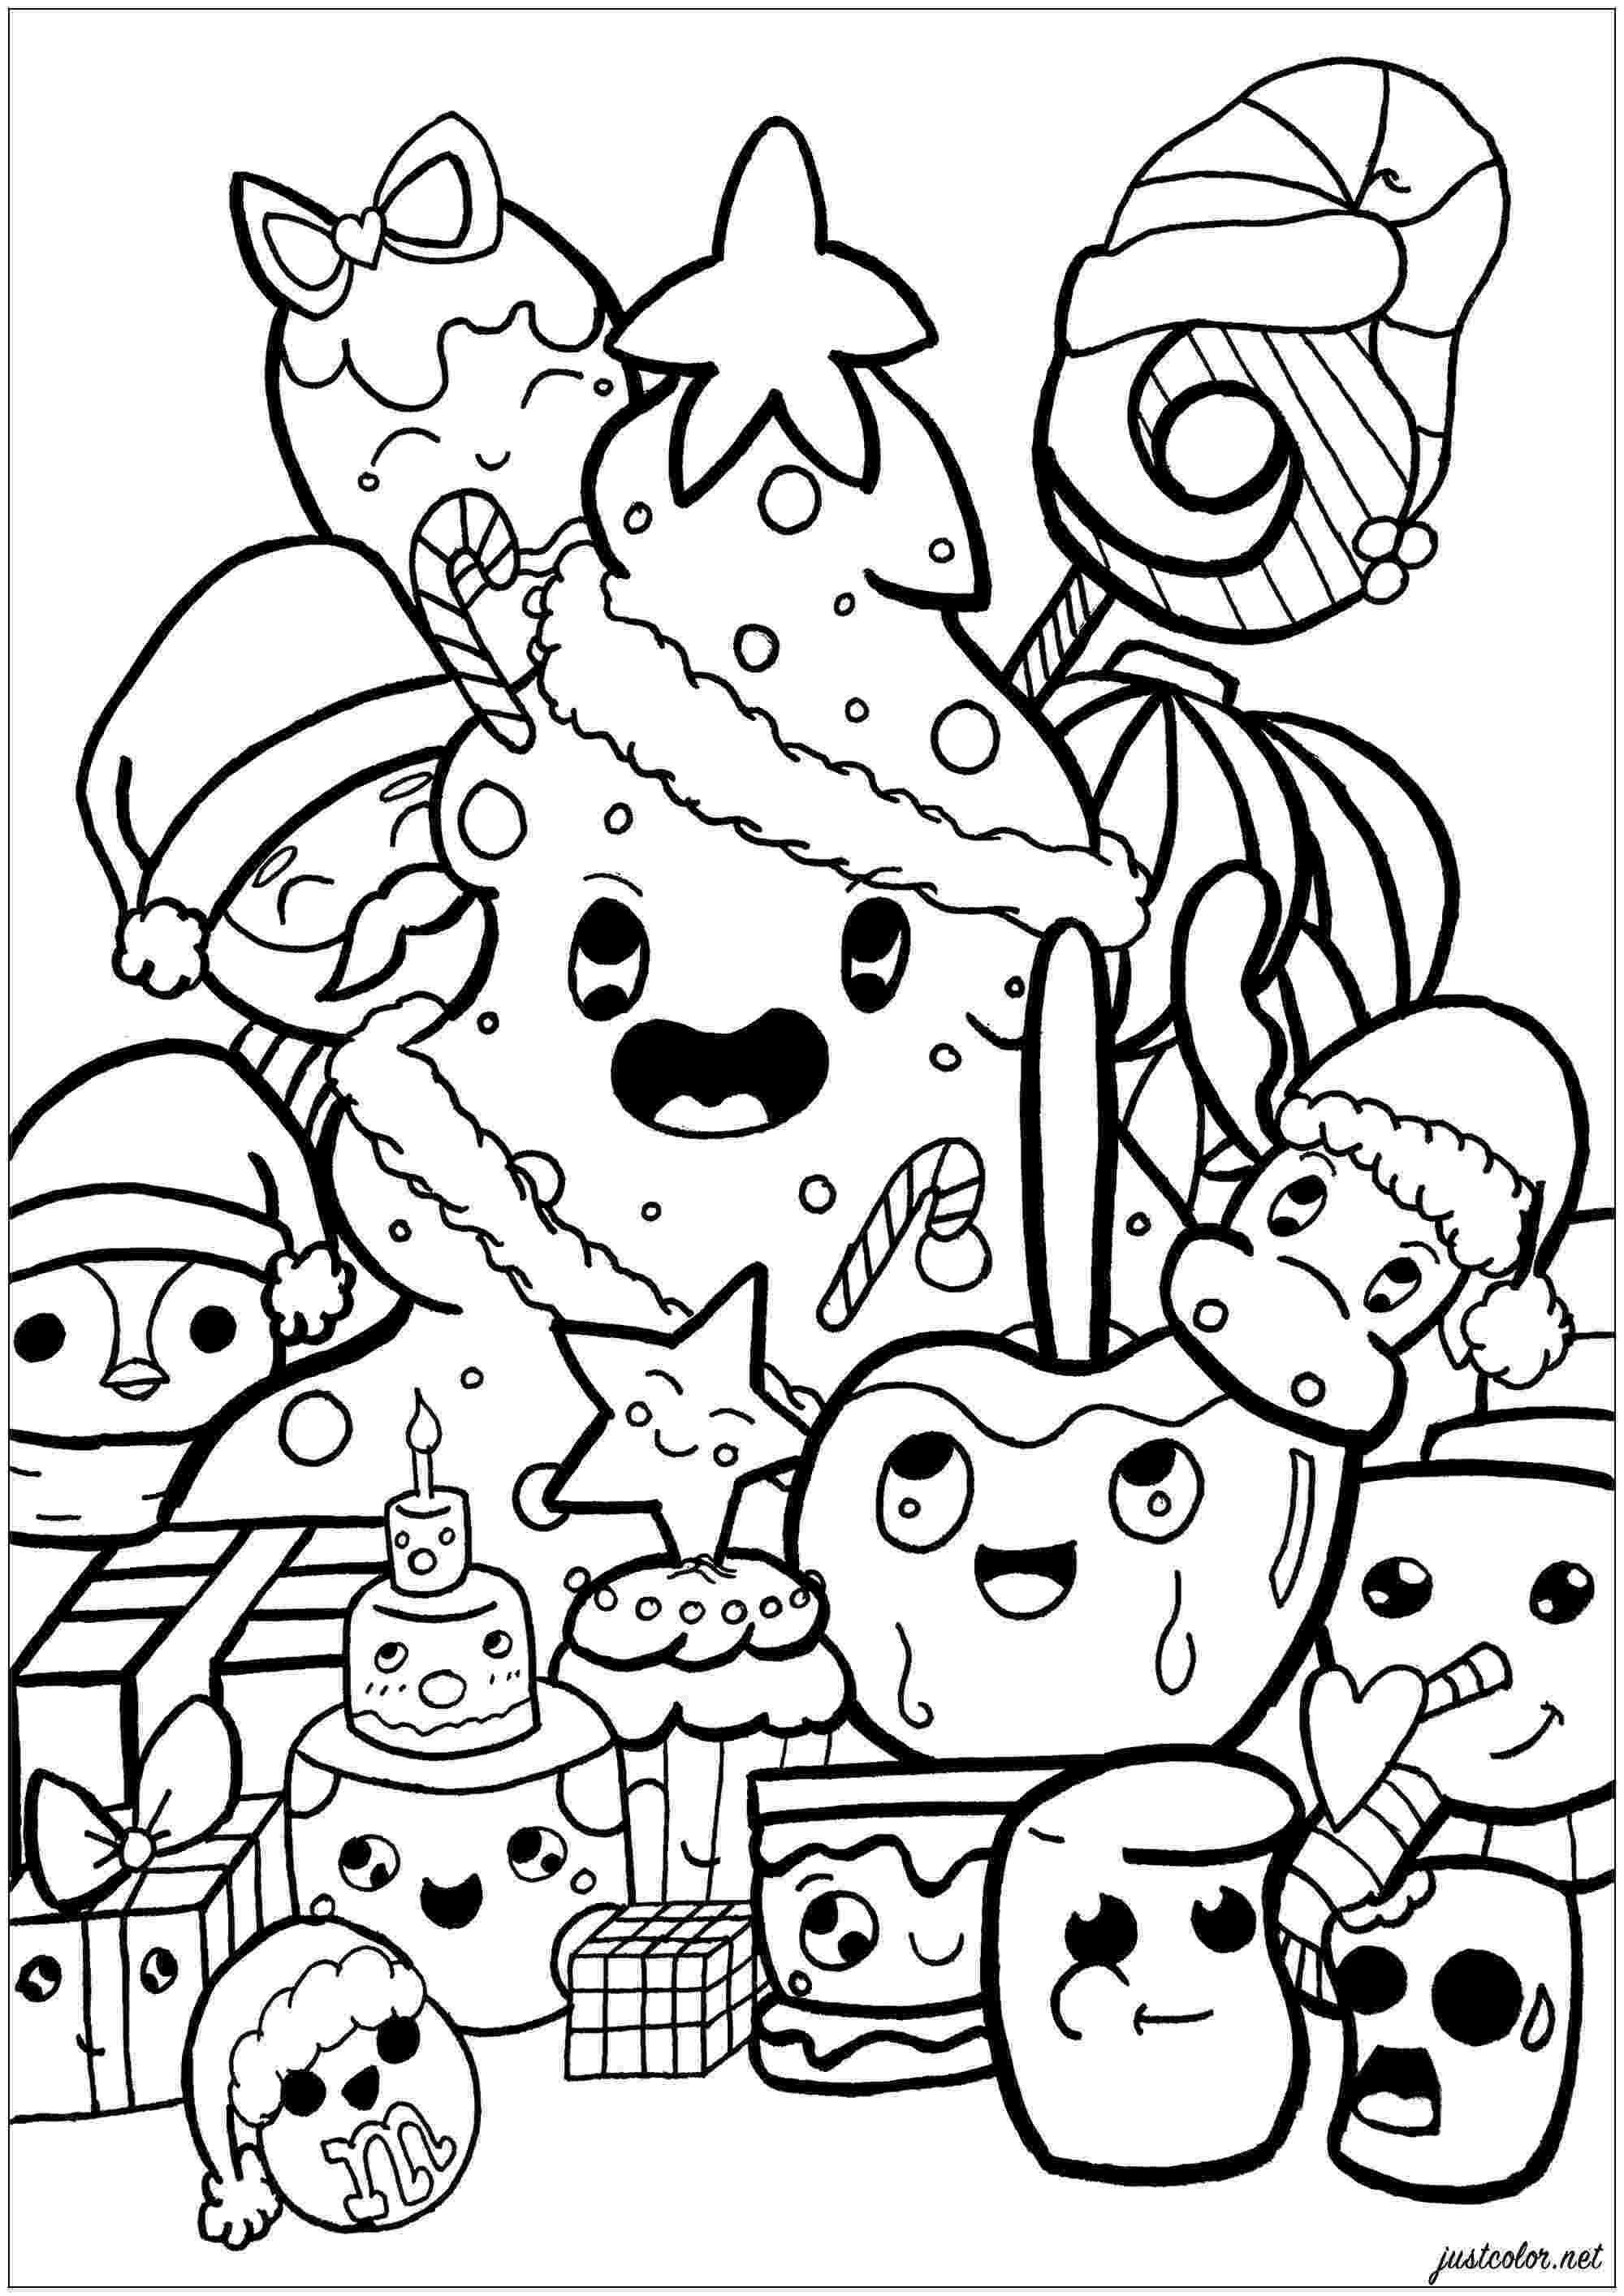 doodle art printables doodle art to print for free doodle art kids coloring pages printables art doodle